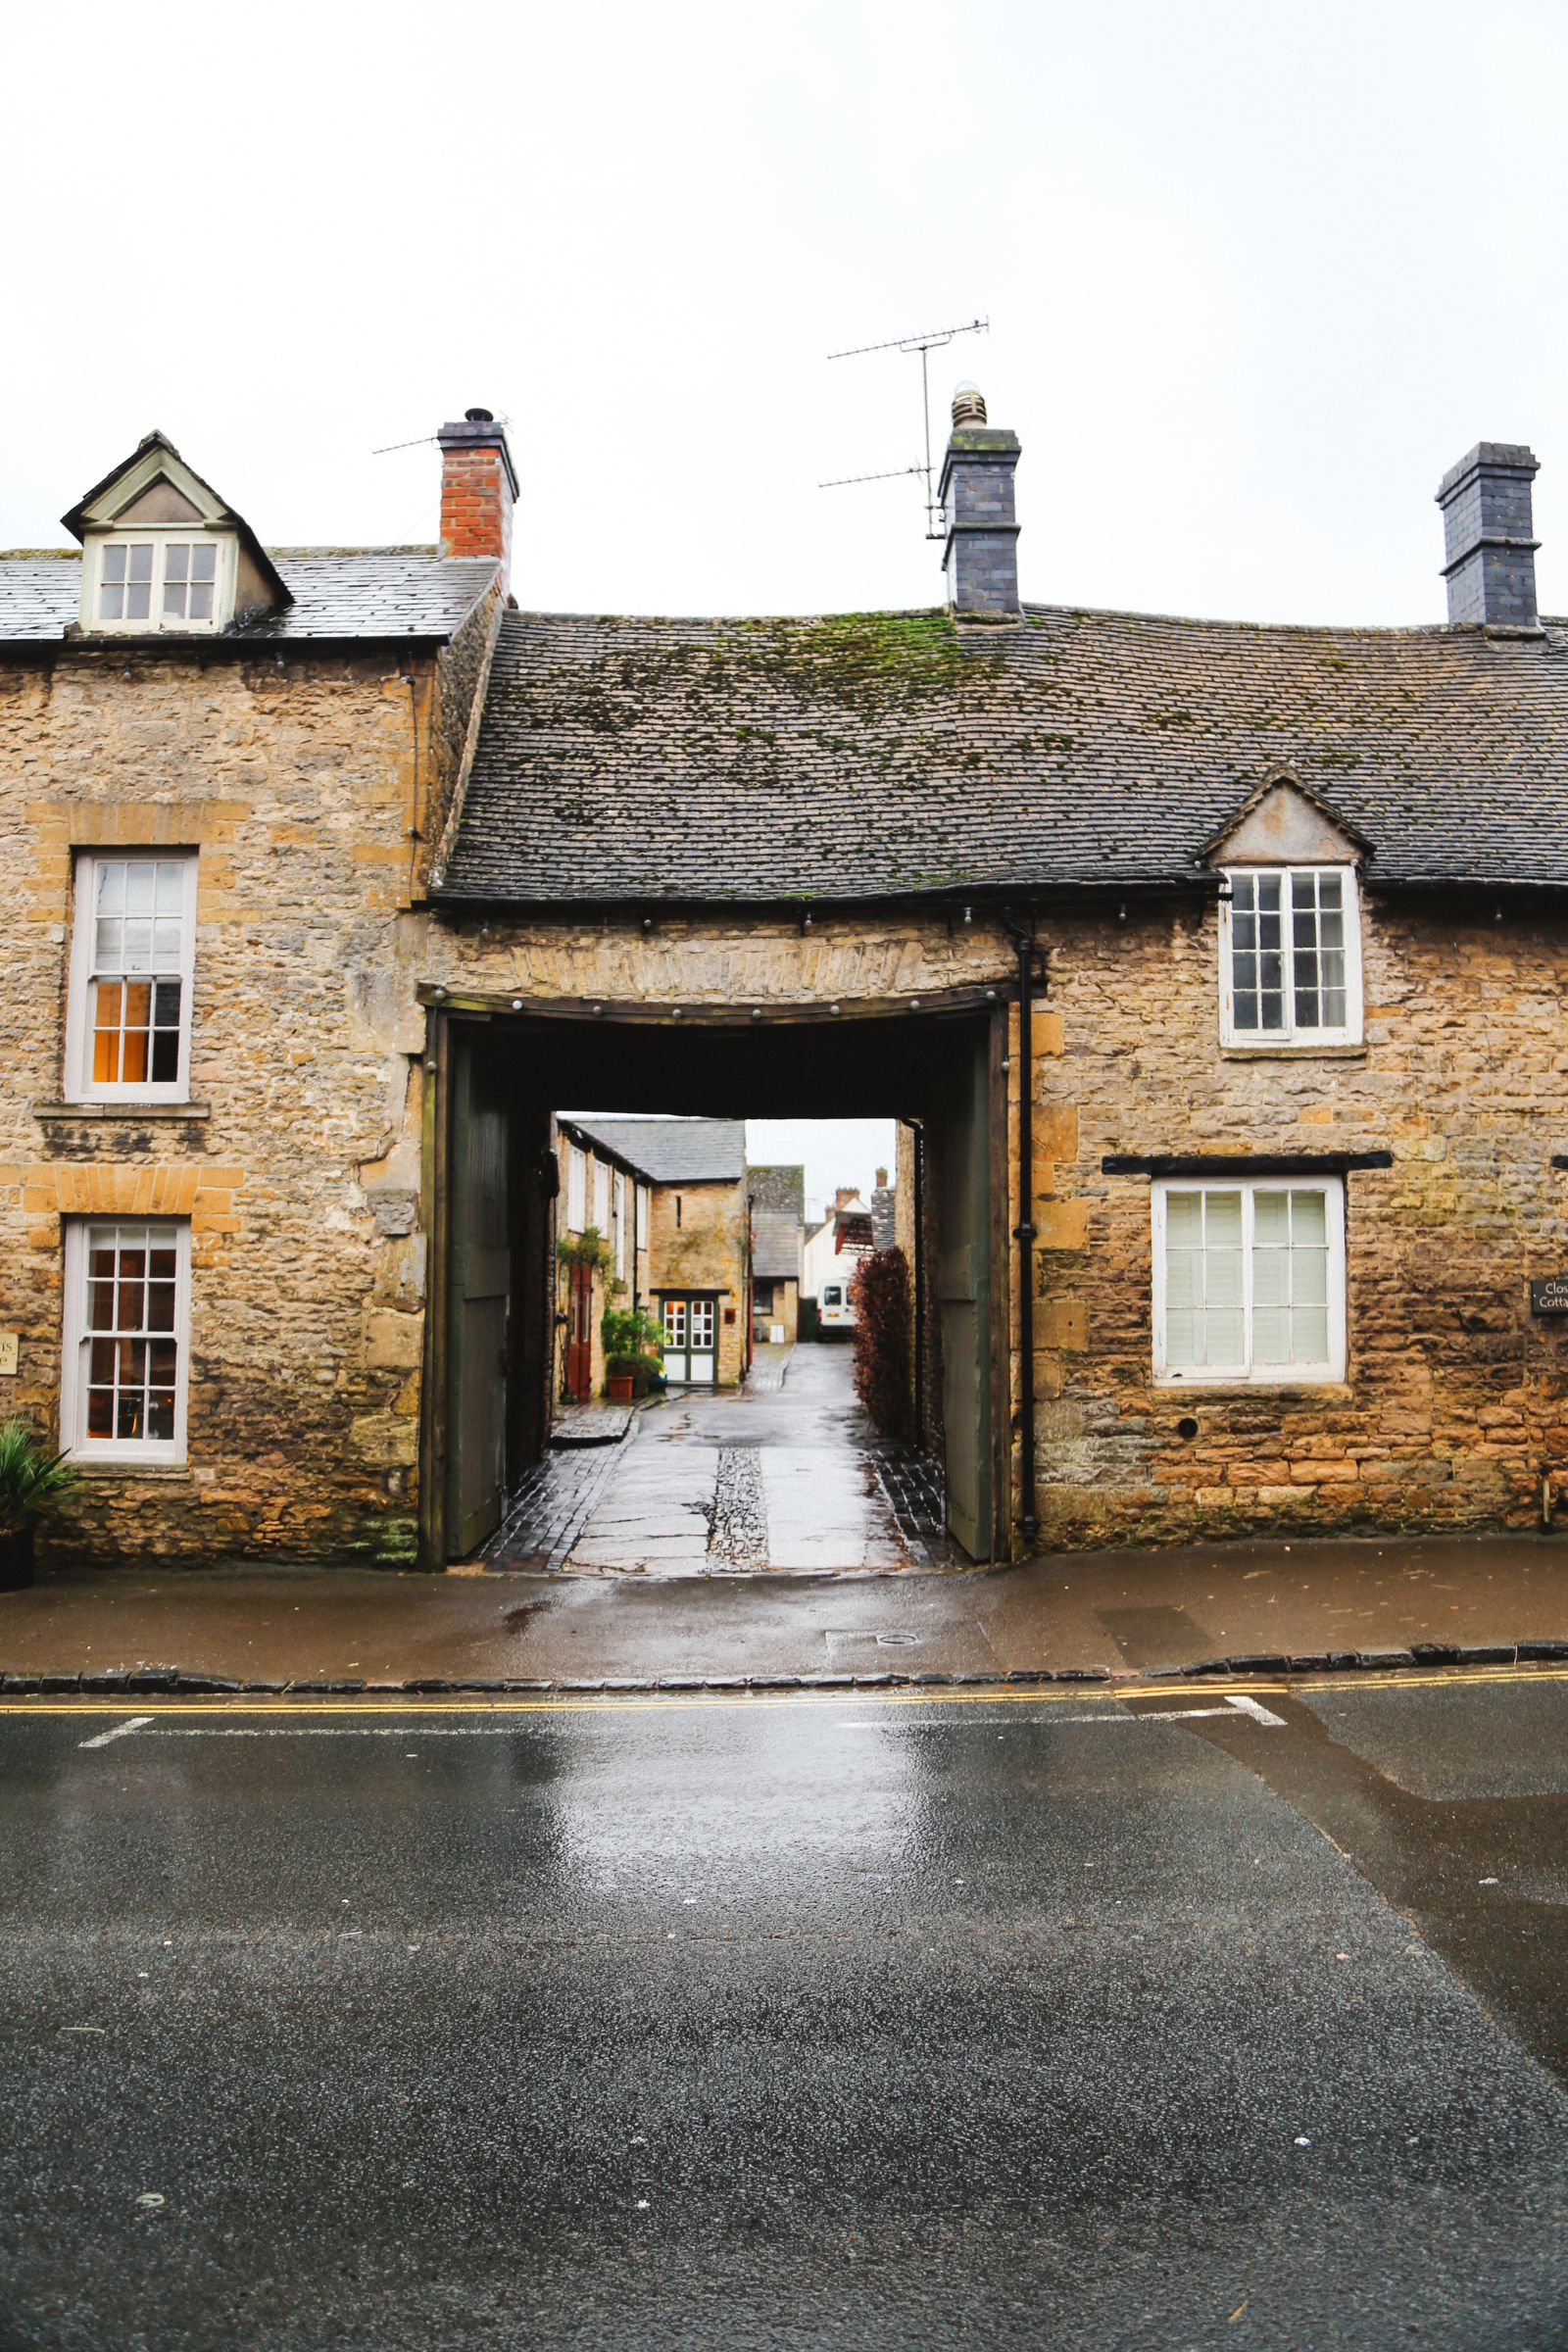 Rainy Days In The English Countryside... The Wood Norton, Bourton-On-The-Water, Broadway, Cotswolds, Stow-on-the-wold (37)